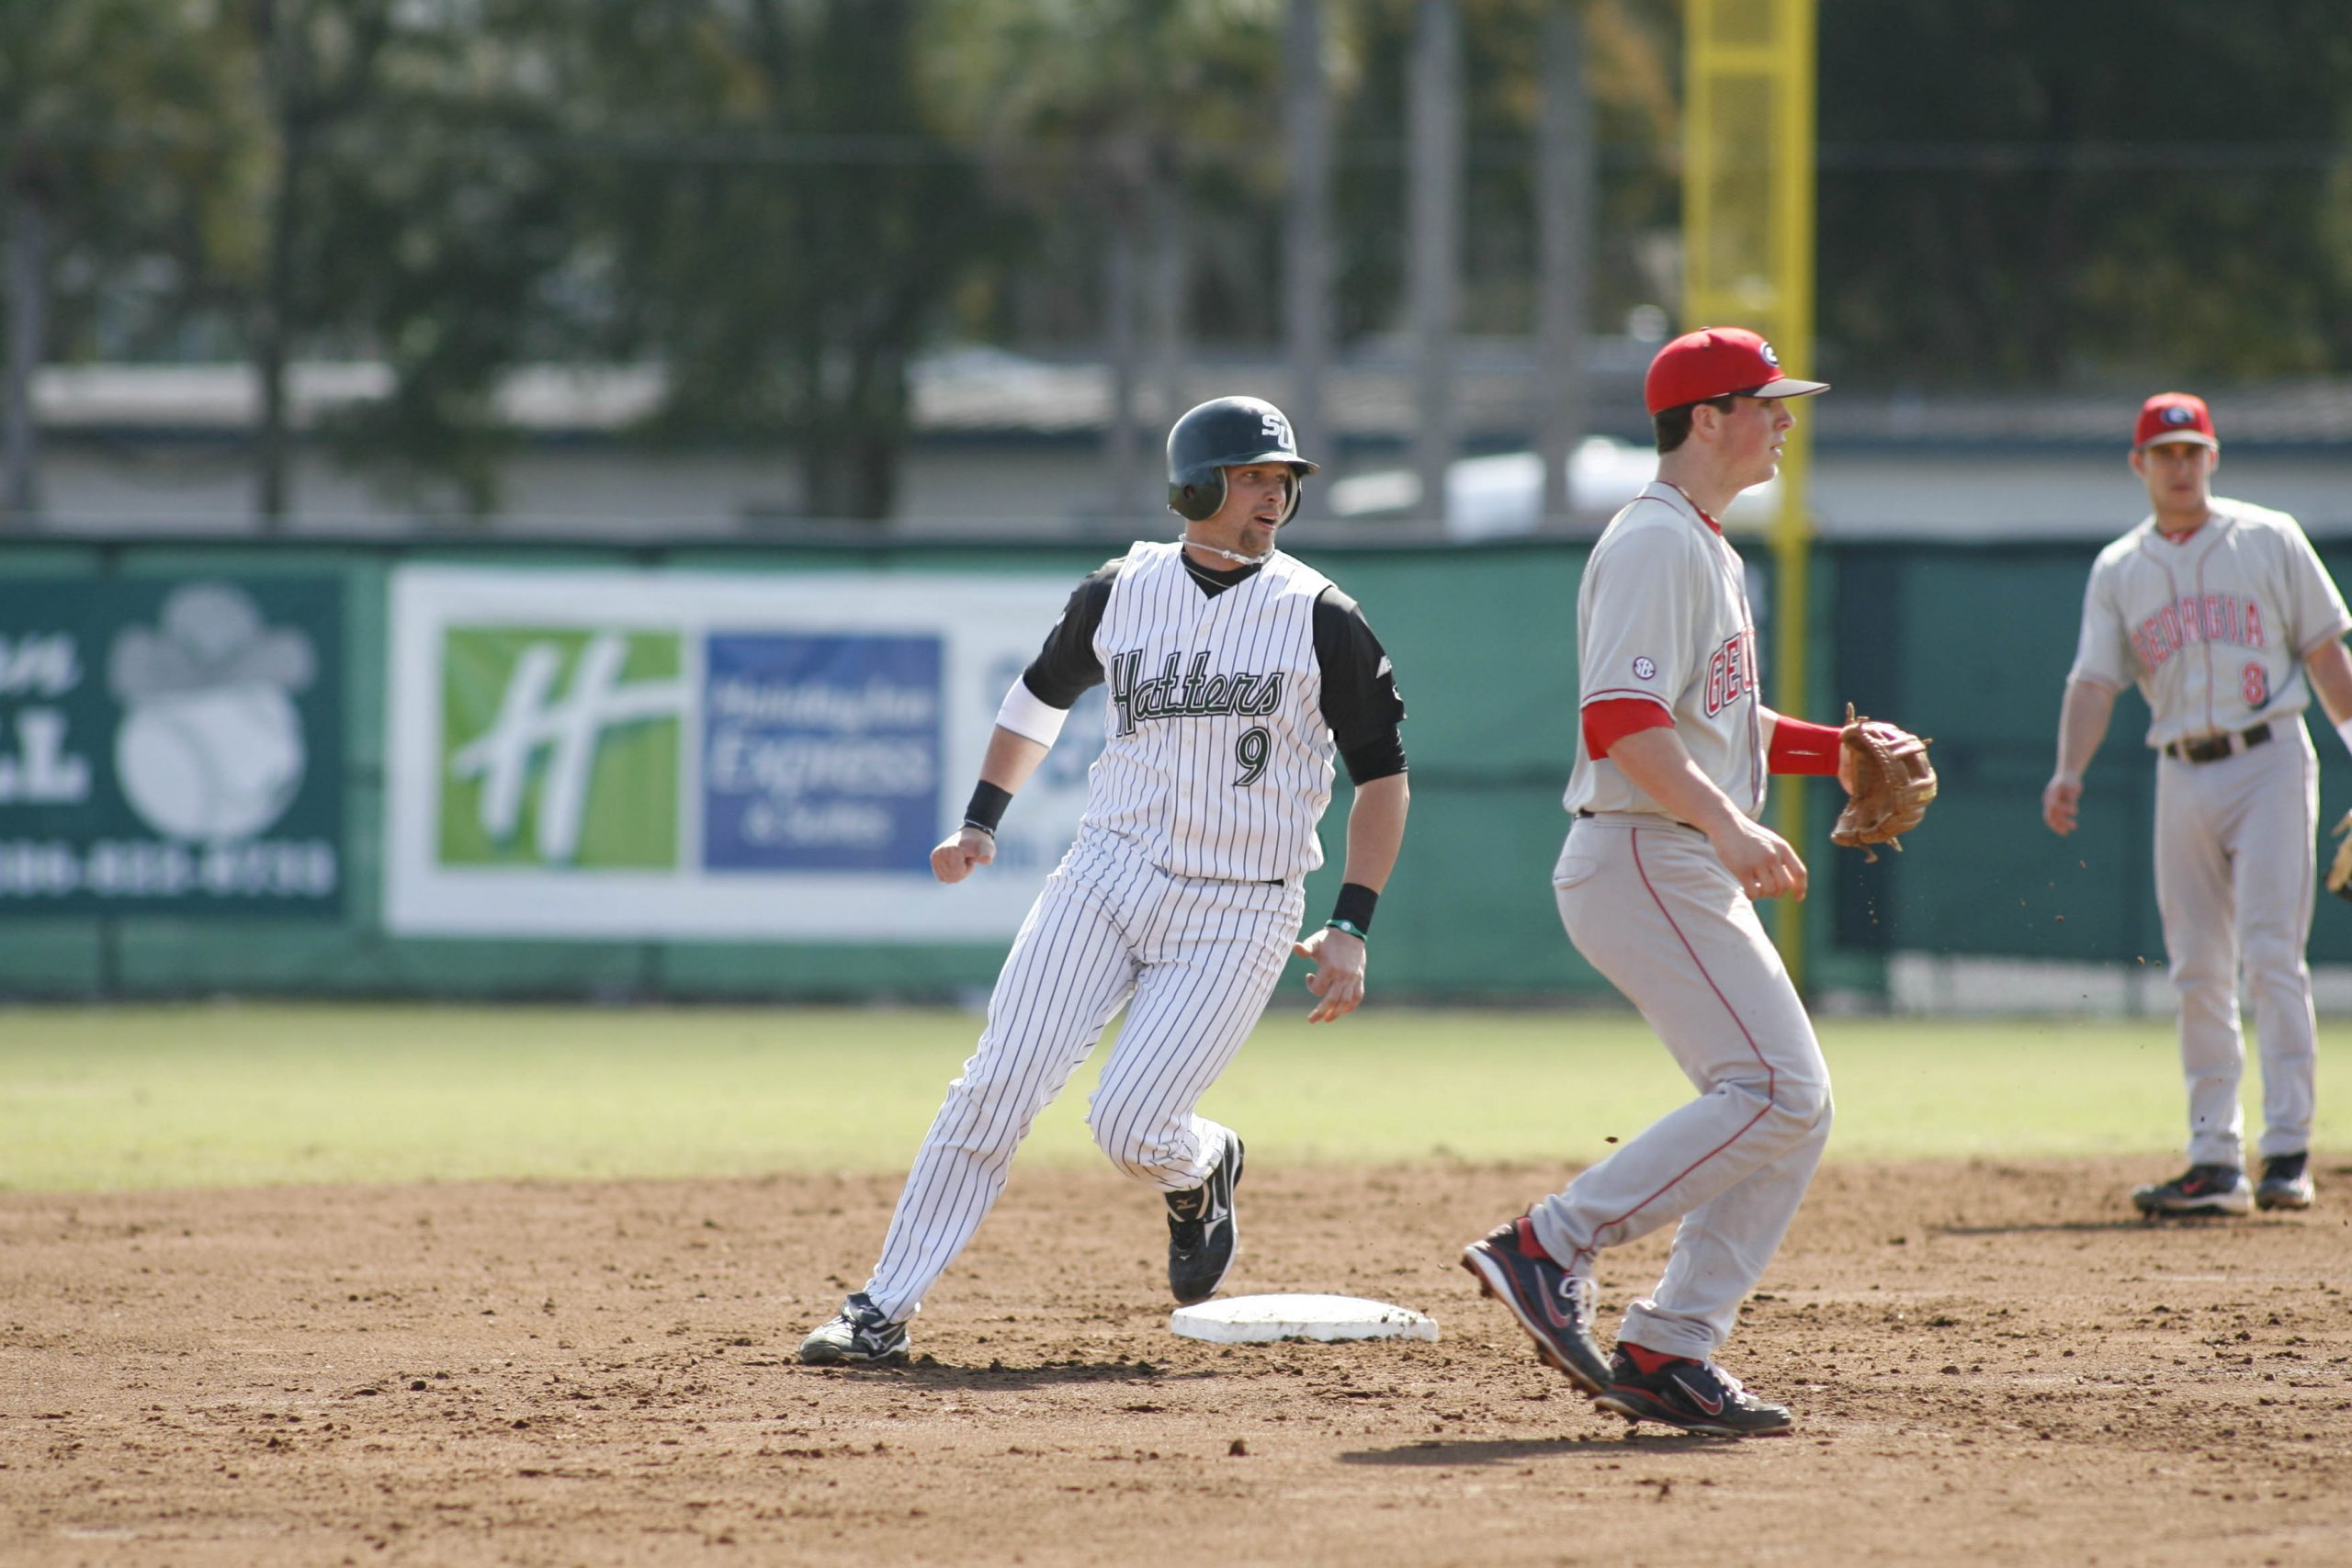 Nick Rickles tags a base during a Hatters baseball game.